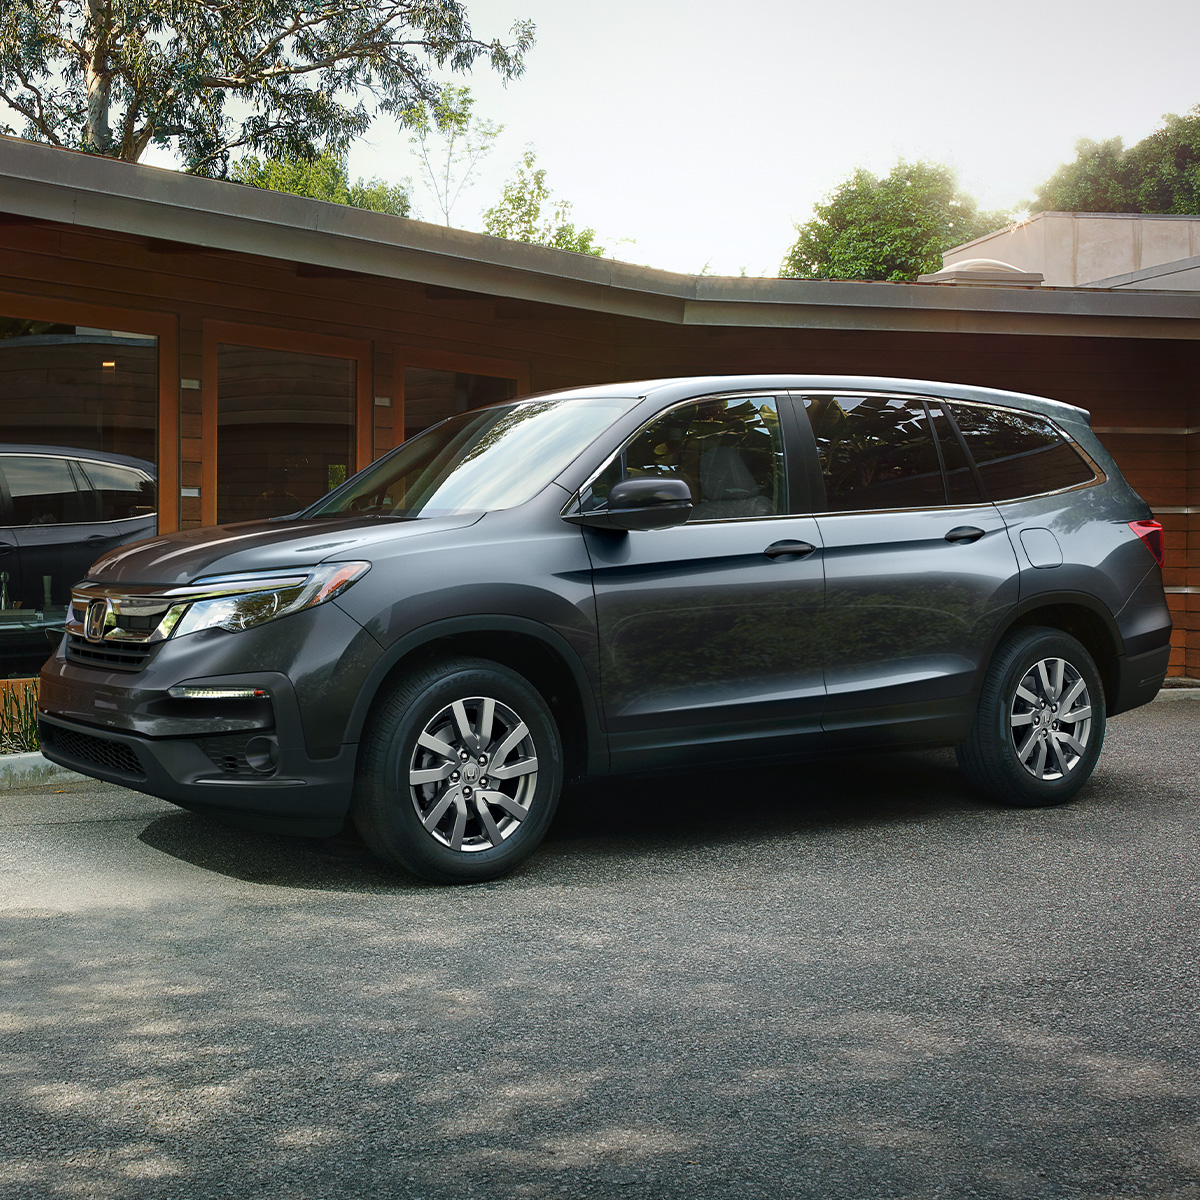 side profile view of dark blue Honda pilot suv parked on a driveway